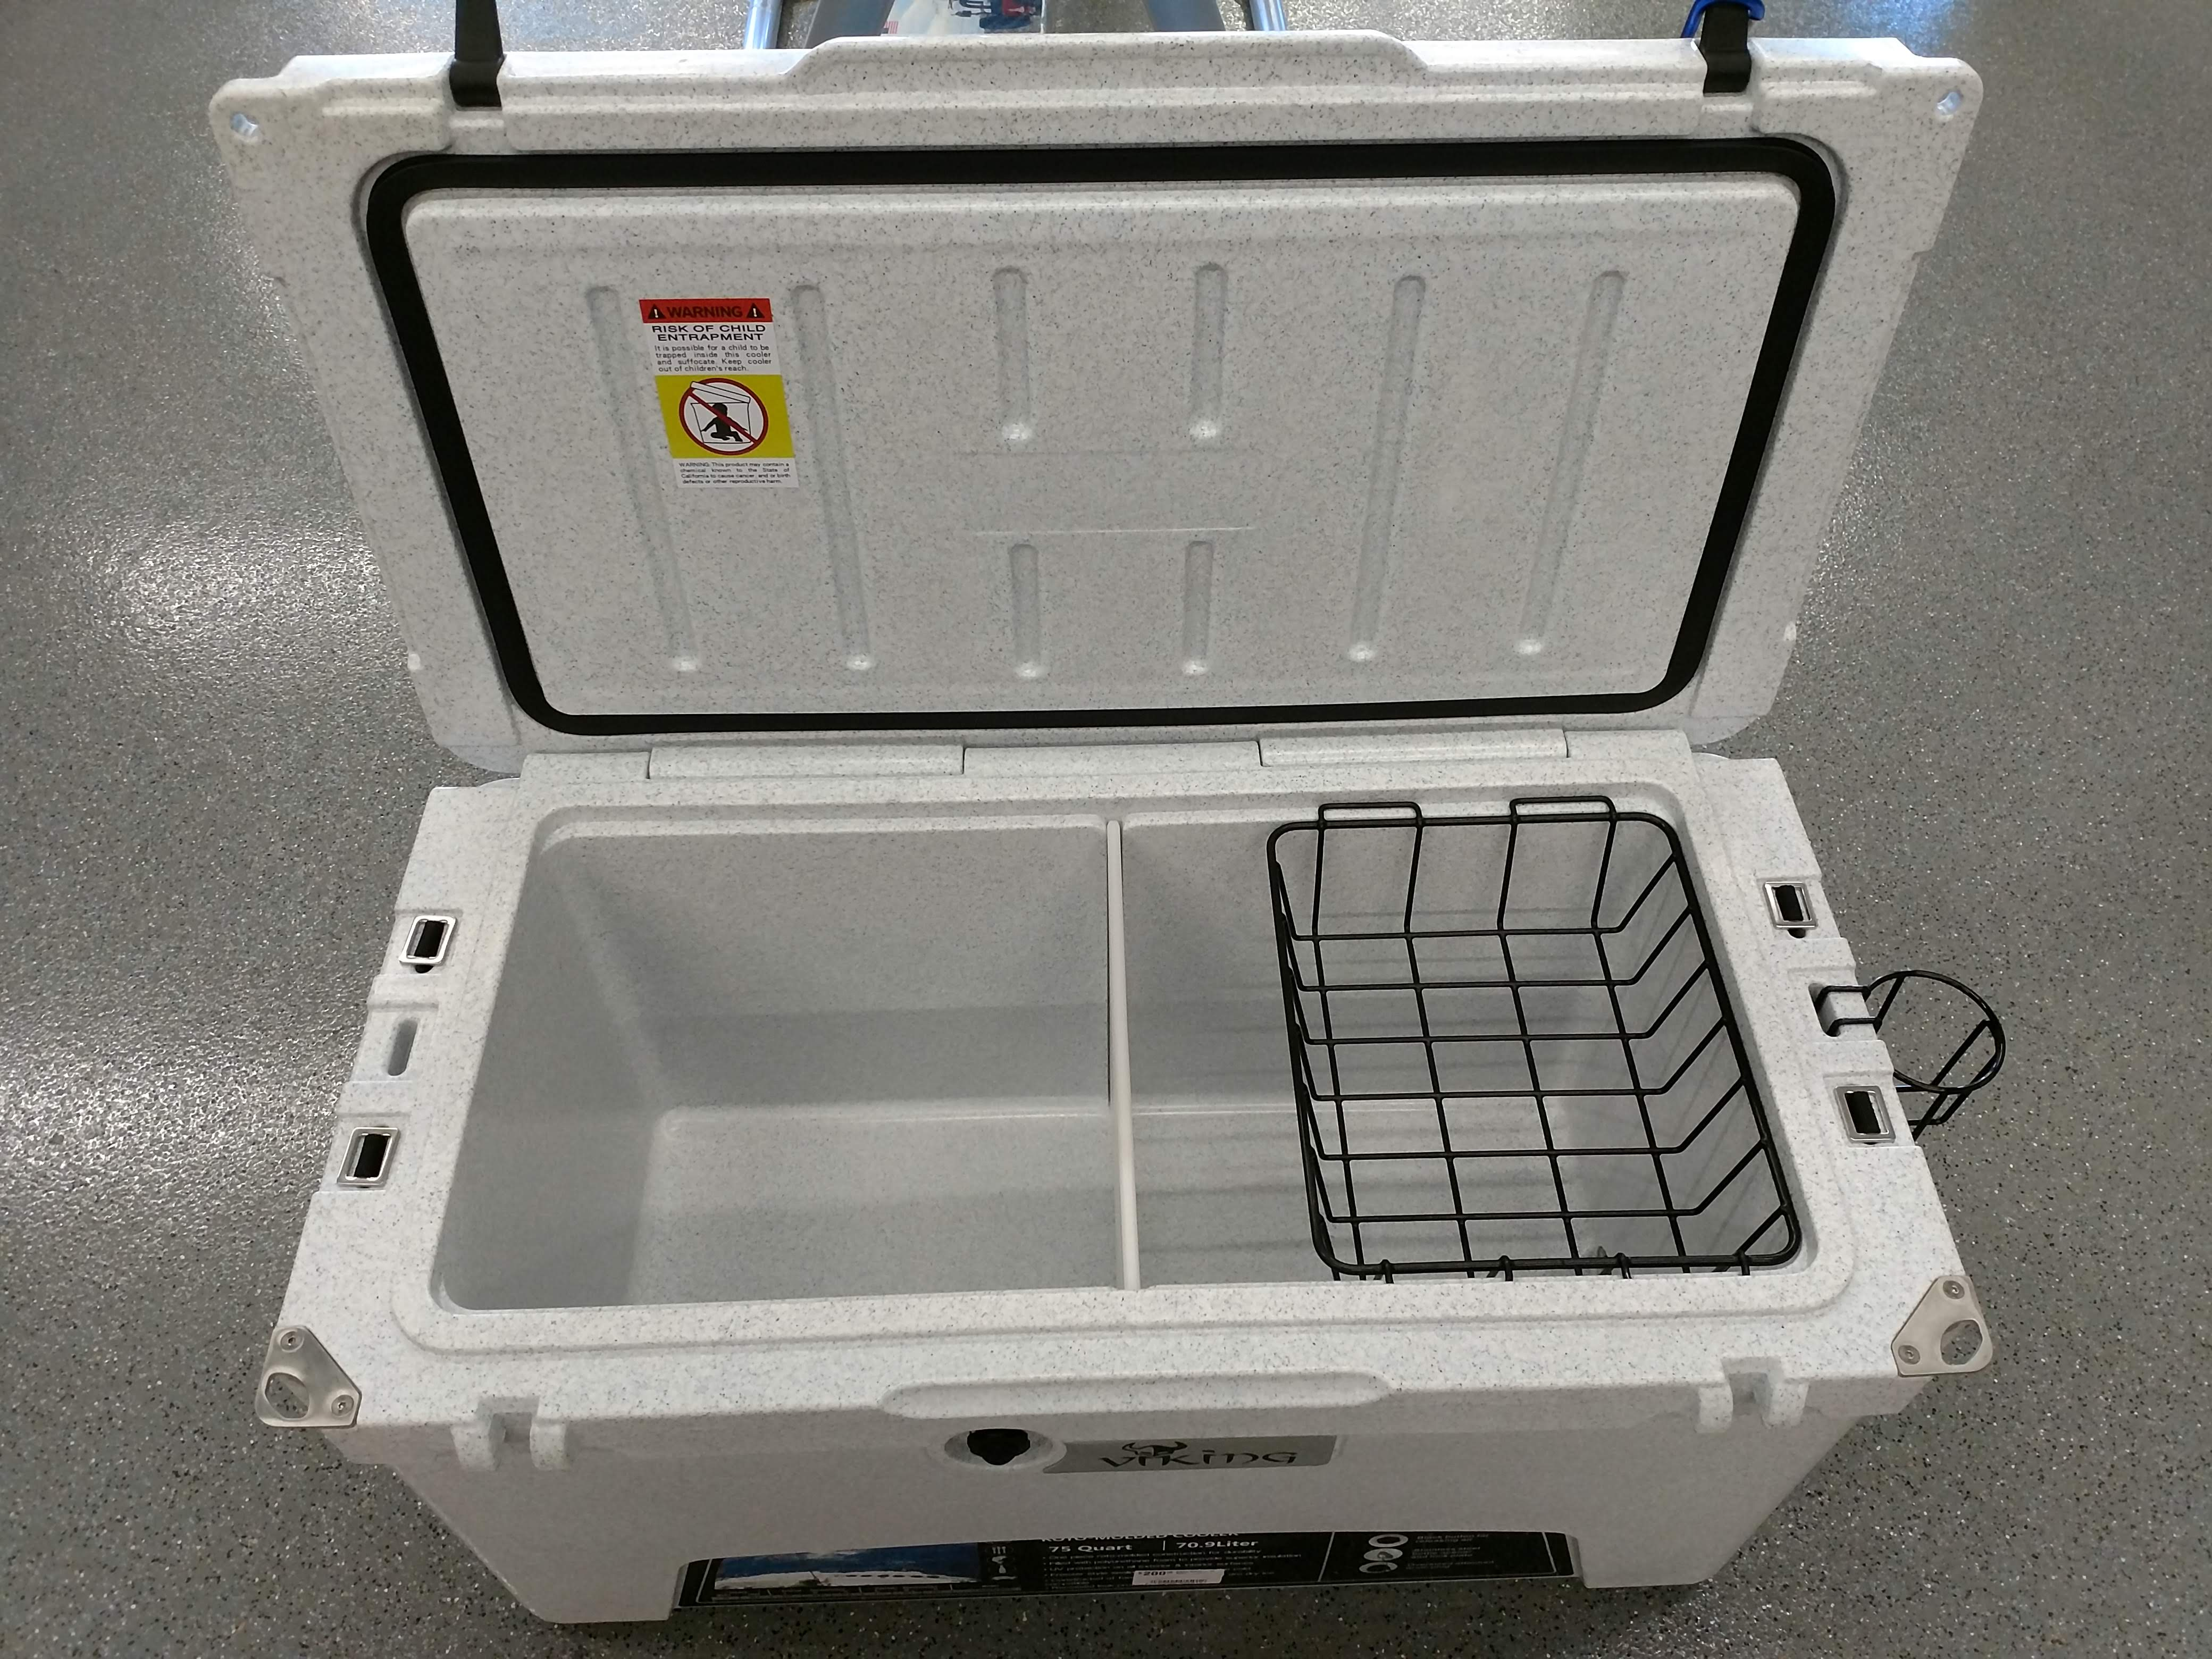 Rent a high quality ice cooler for car camping trips